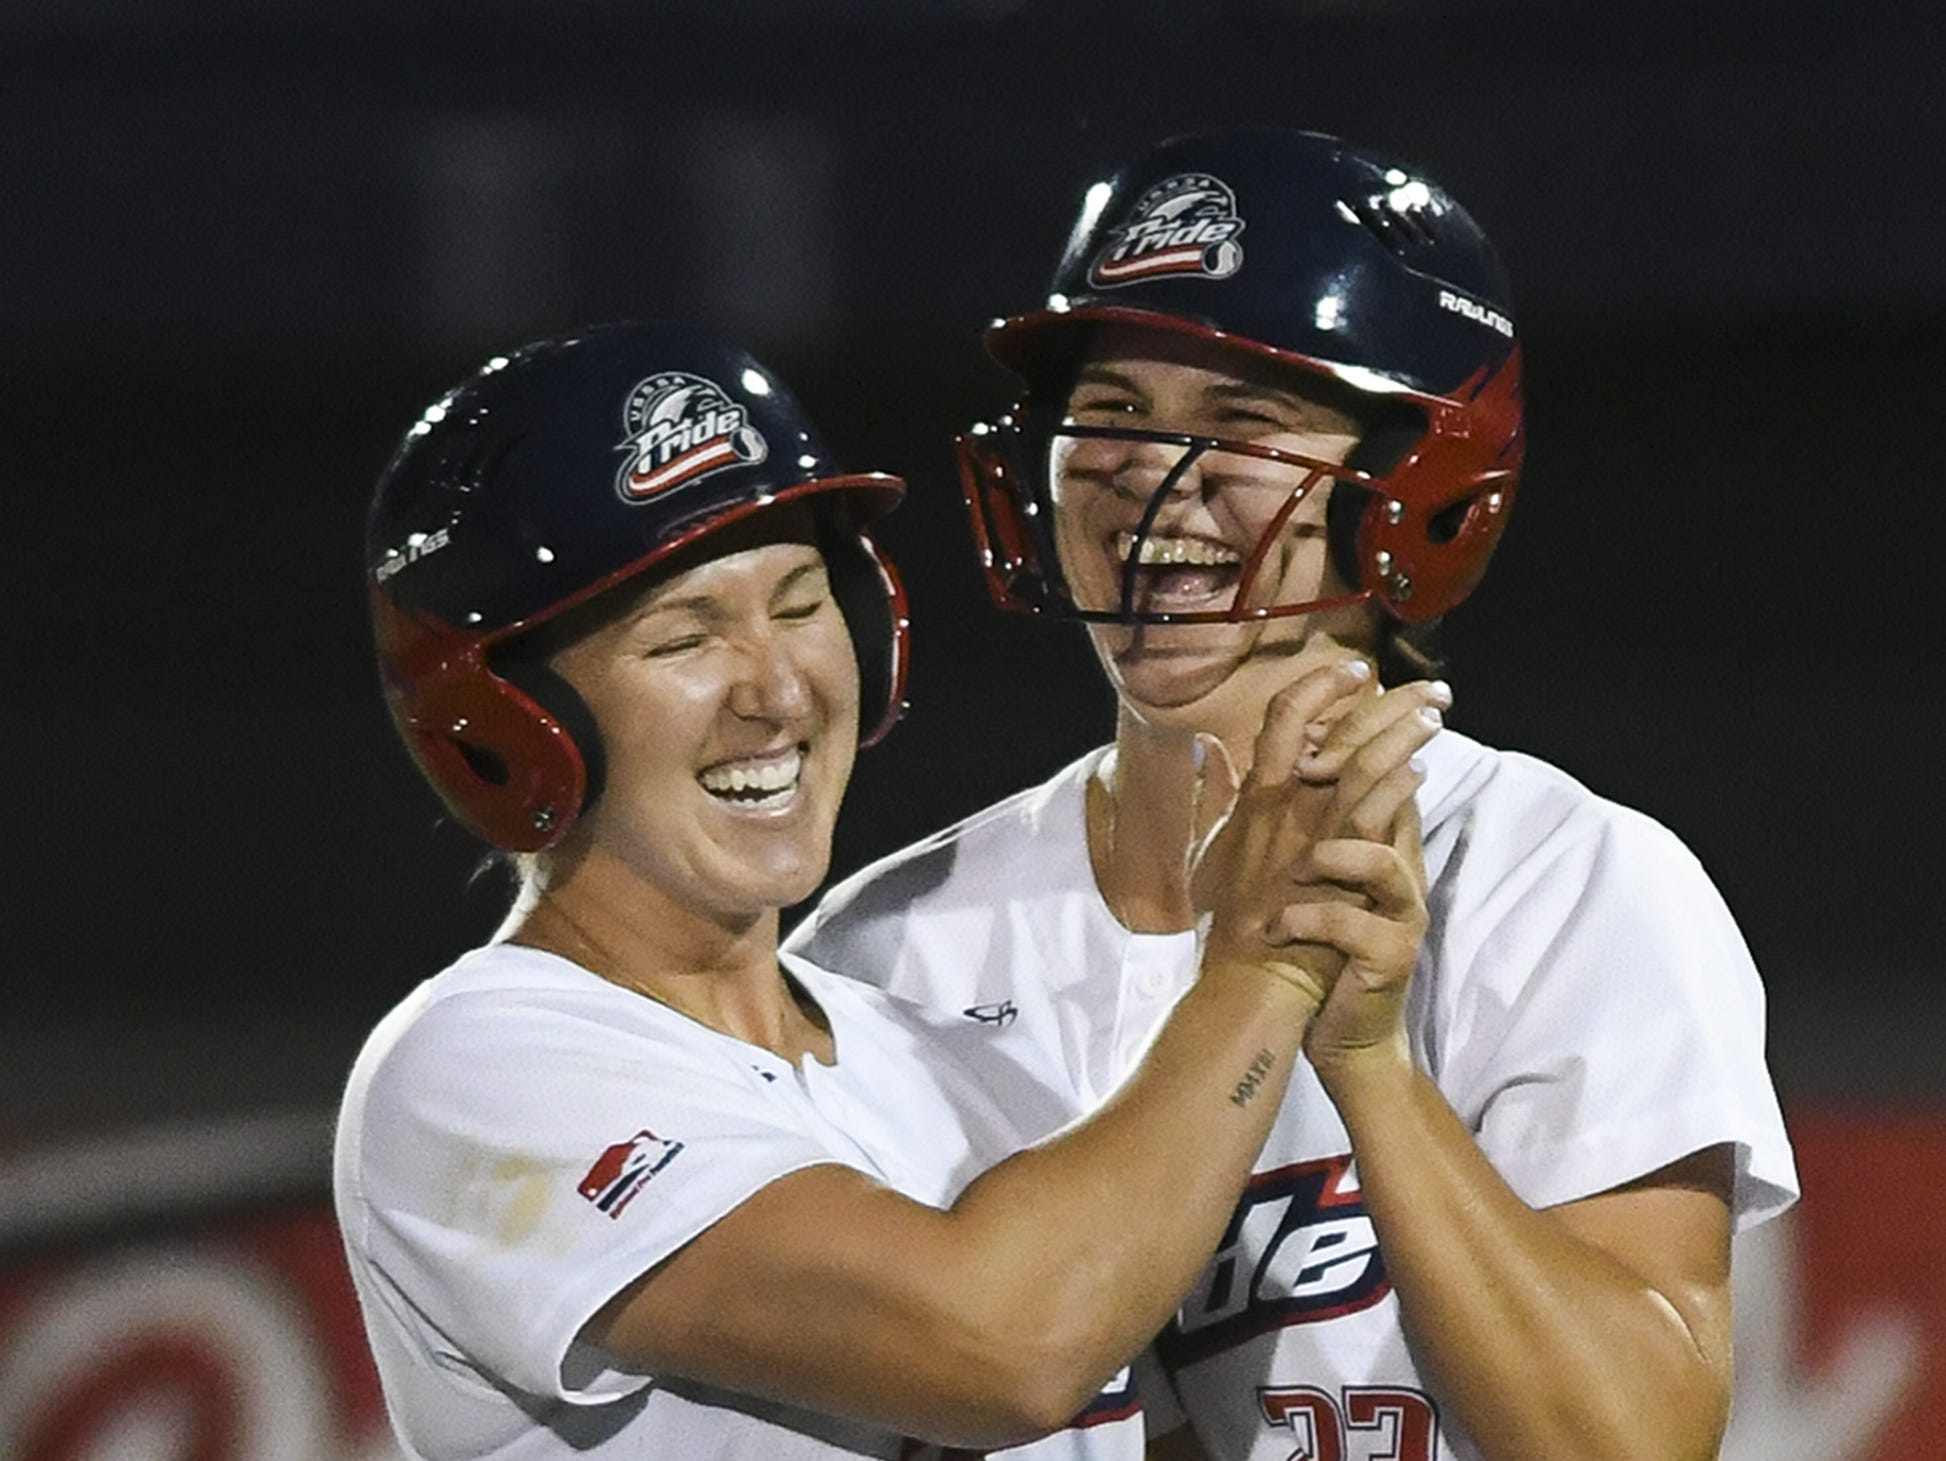 Shelby Pendley of the USSSA Pride celebrates after drawing a bases loaded walk to score teammate Nicole DeWitt and win the game against Chicago Friday in Viera.